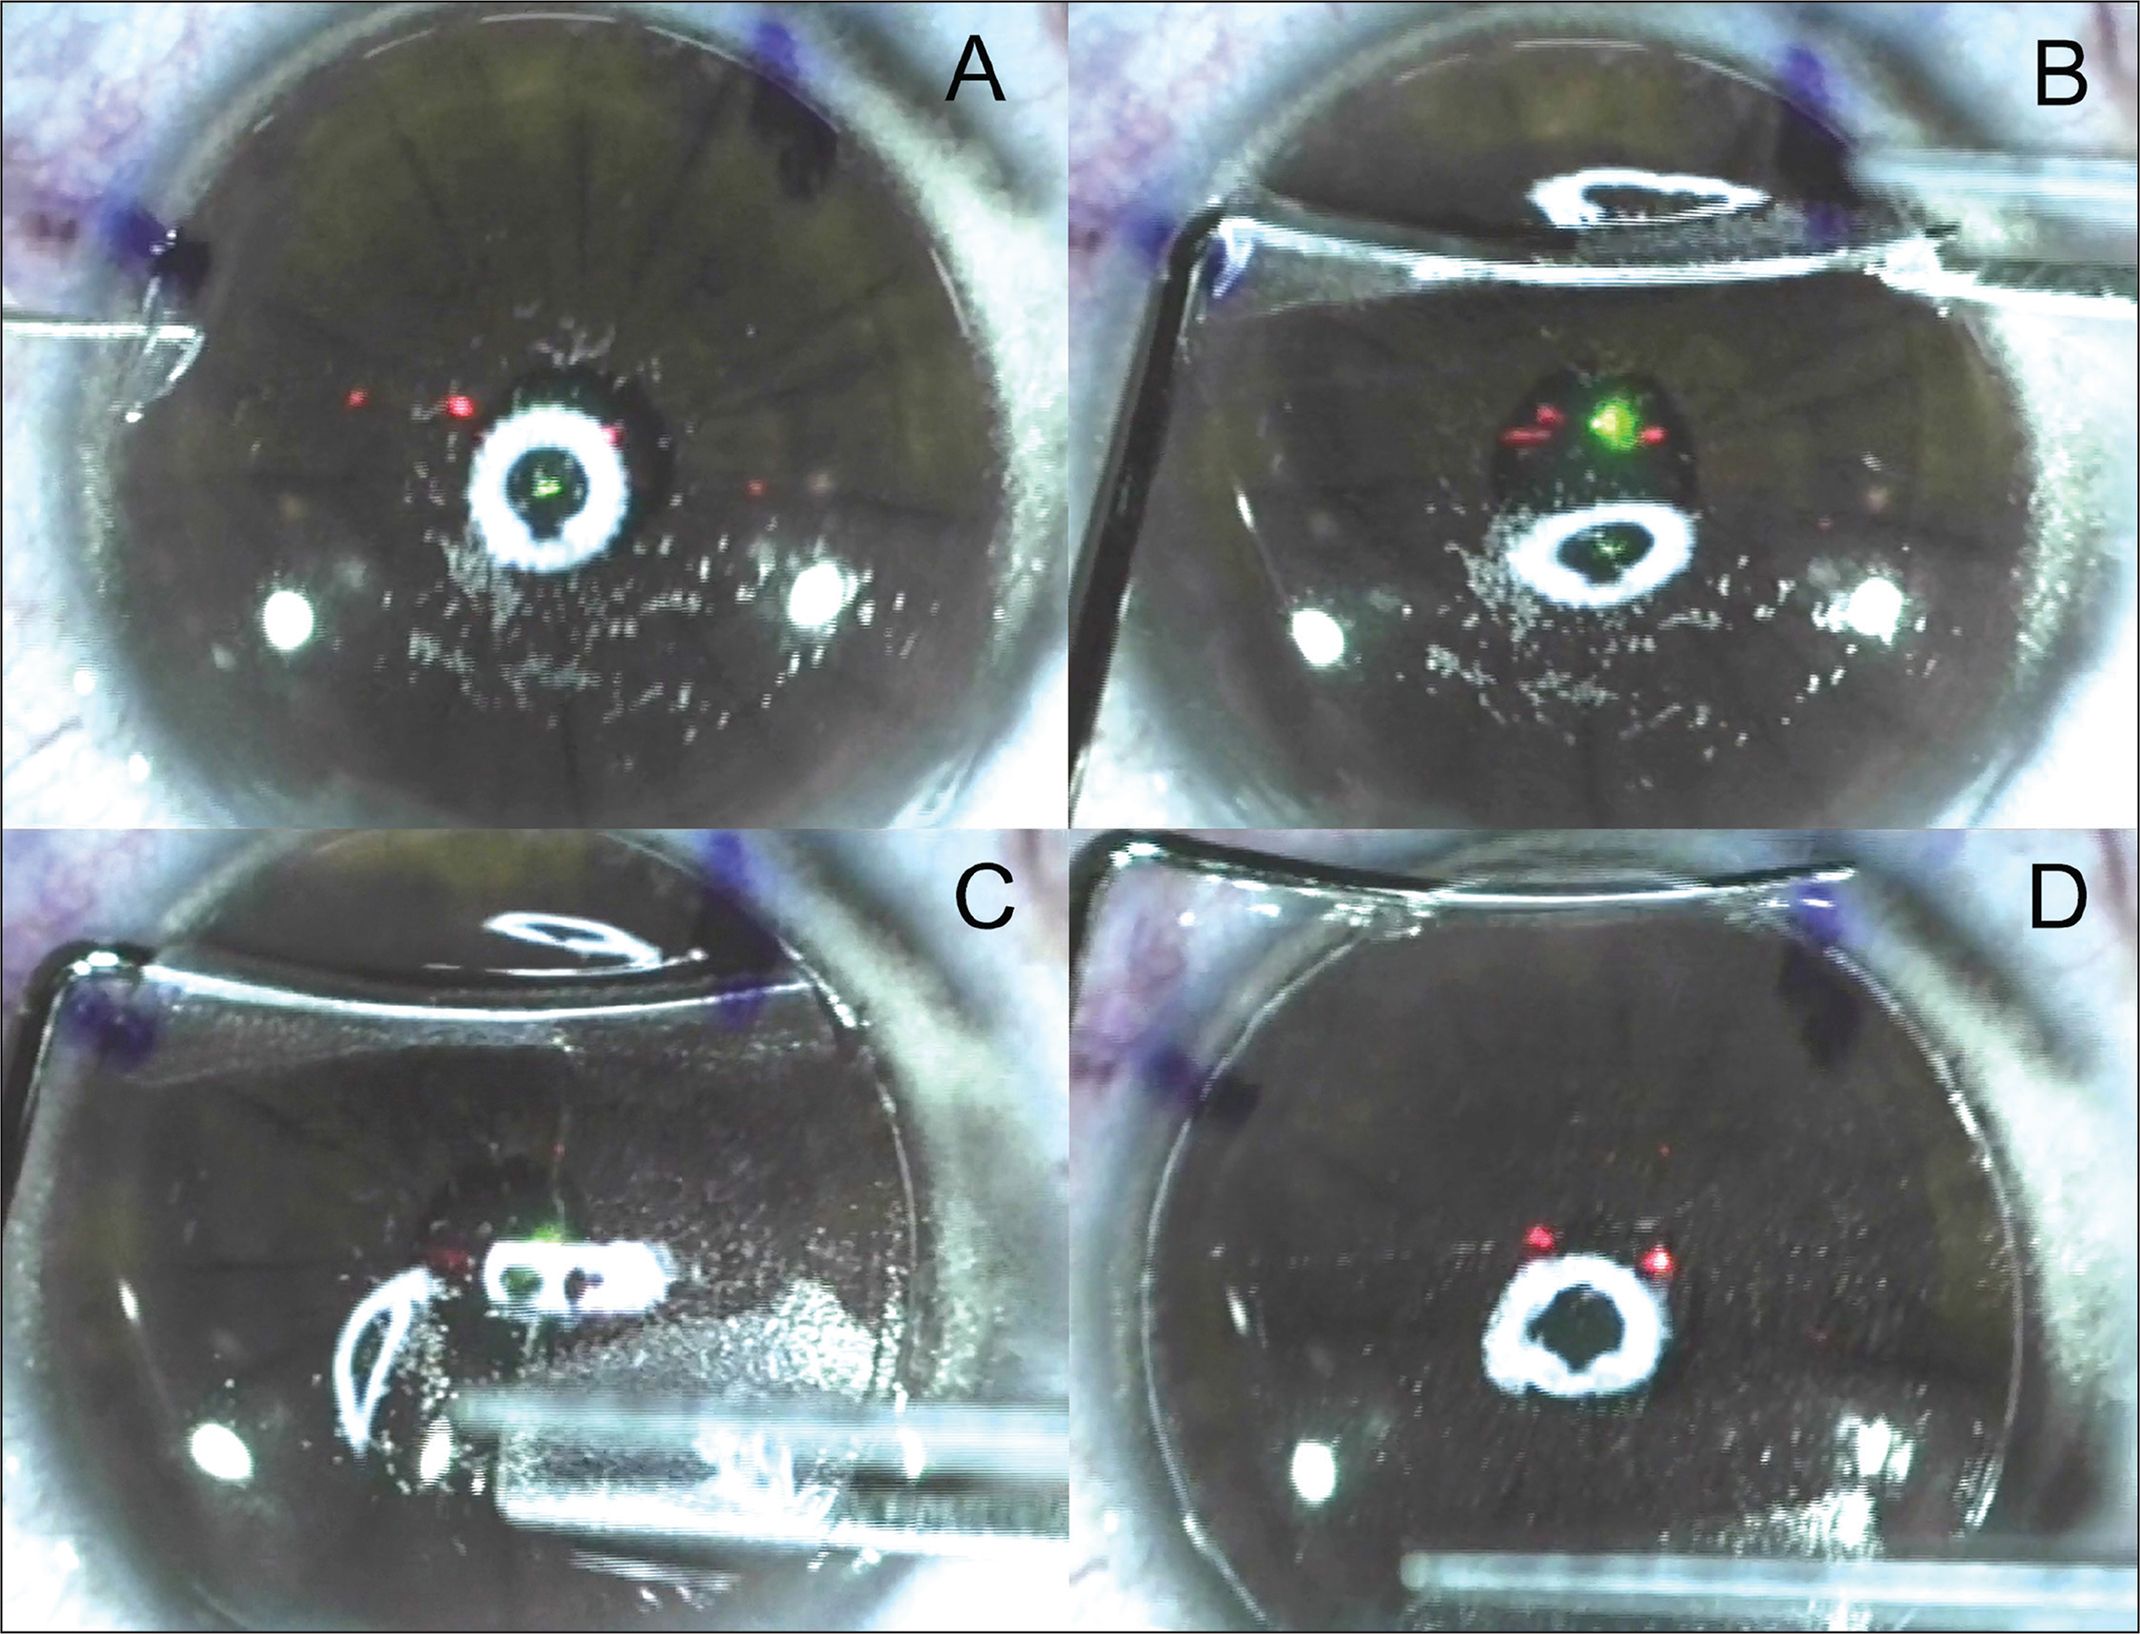 Series of images describing the inferior pseudo-hinge fulcrum technique for lifting a LASIK flap in an eye that has previously had small incision lenticule extraction (SMILE). The aim of the technique is to avoid placing the tip of either instrument in the vicinity of either of the small incisions because this may tear the flap. (A) The flap lifter is used to open the flap side cut in the inferior third of the flap. (B) The flap lifter is pushed across the flap and used to open the flap side cut on the opposite side to create an access point for the McPherson's forceps. This motion is made with some upward force to avoid the instrument tip breaking through to the original SMILE interface. (C) The McPherson's forceps is inserted to the mid-point of the flap and swept superiorly, thereby separating the region of the small incision with the arm of the instrument and not the tip. The flap lifter is held in place using the inferior unseparated portion of the flap to provide counter-traction for the McPherson's forceps. A second sweep is made to separate the other half of the flap. (D) The McPherson's forceps is then placed against the superior hinge to provide counter-traction for the flap lifter to be used to separate the inferior portion of the flap in the usual manner. Reprinted with permission from Reinstein DZ, Archer TJ, Carp GI. The Surgeon's Guide to SMILE: Small Incision Lenticule Extraction. Thorofare, NJ: SLACK Incorporated; 2018.